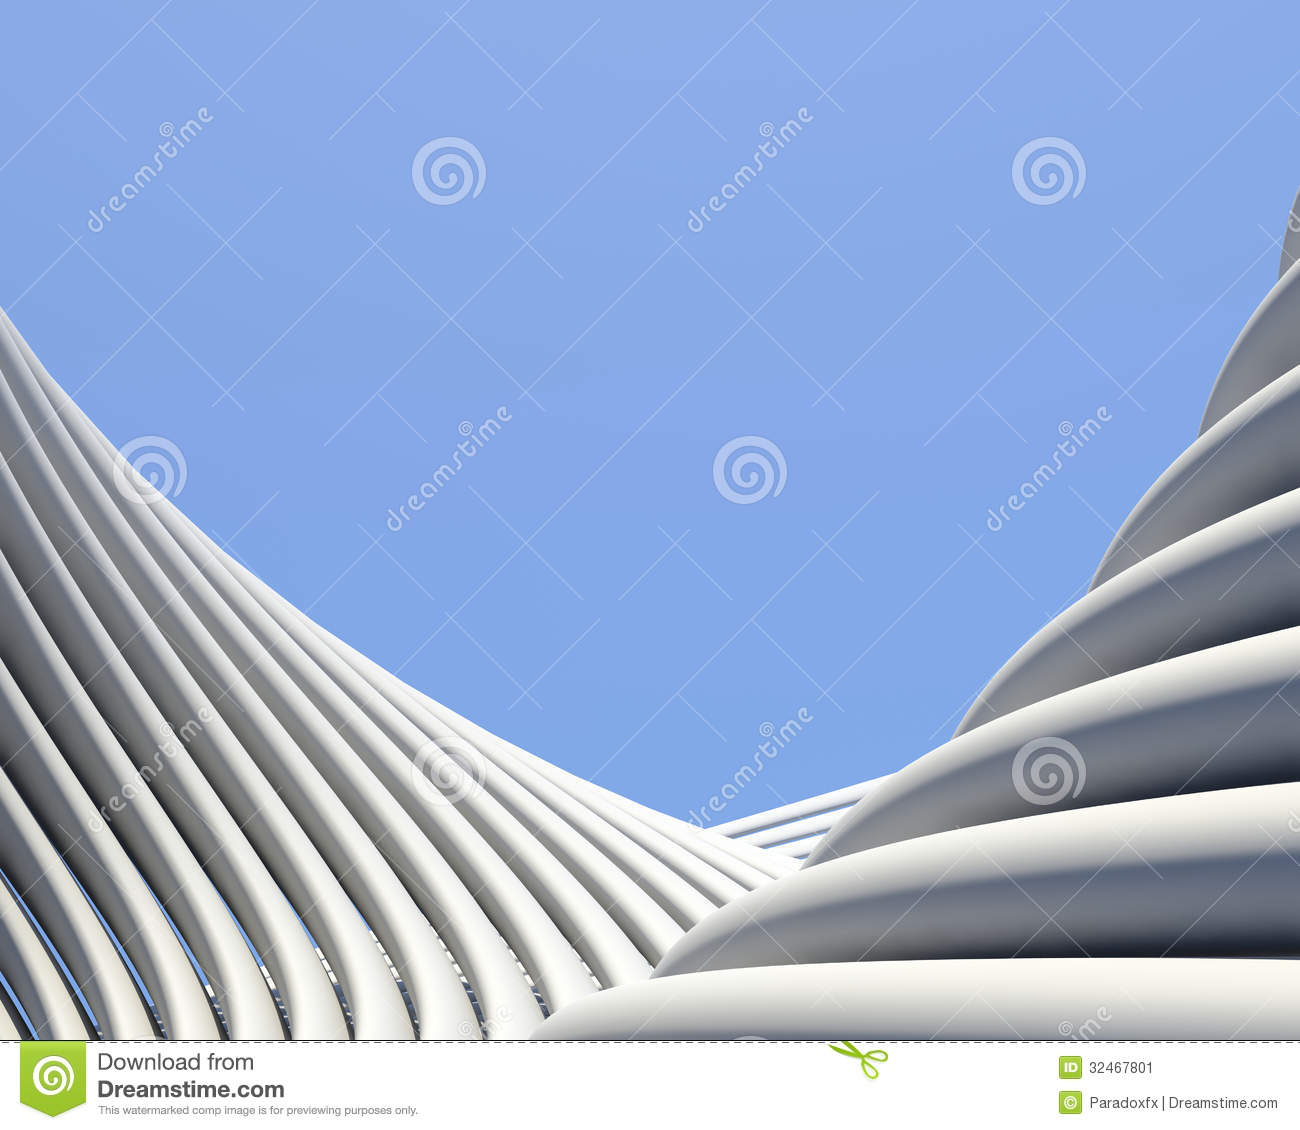 Modern Architecture Wallpaper modern fantastic architectural wallpaper stock image - image: 32467801